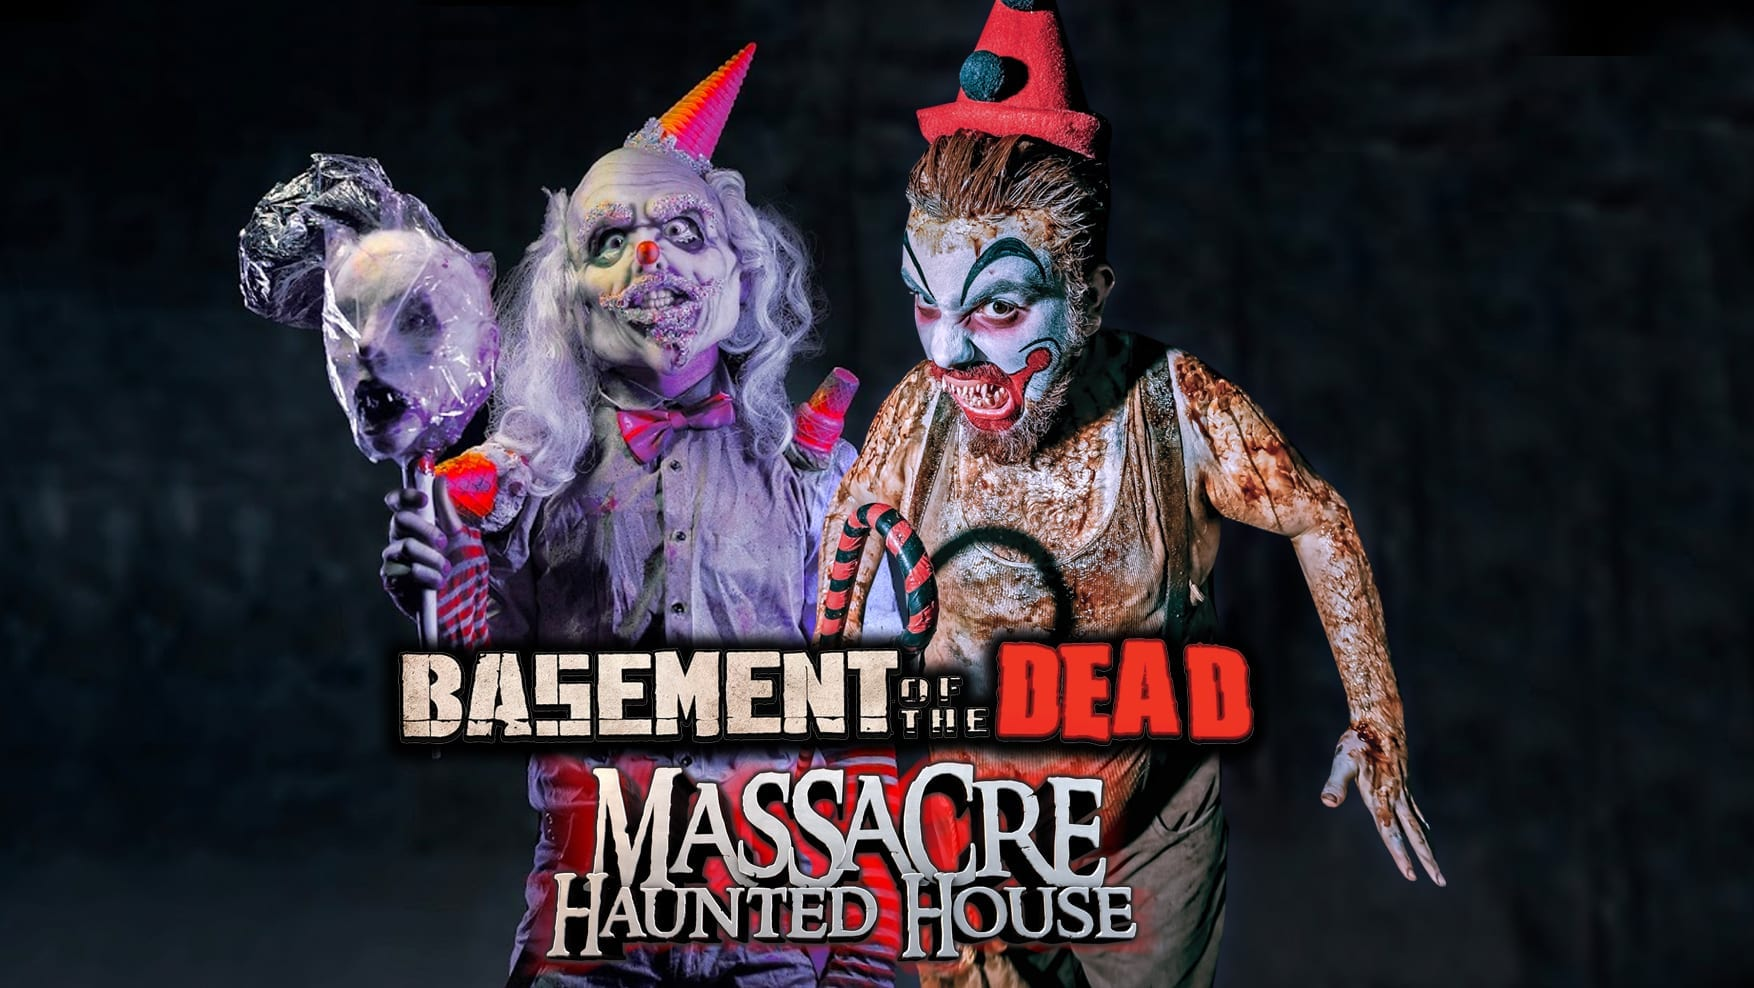 Basement of the Dead & The Massacre Haunted House